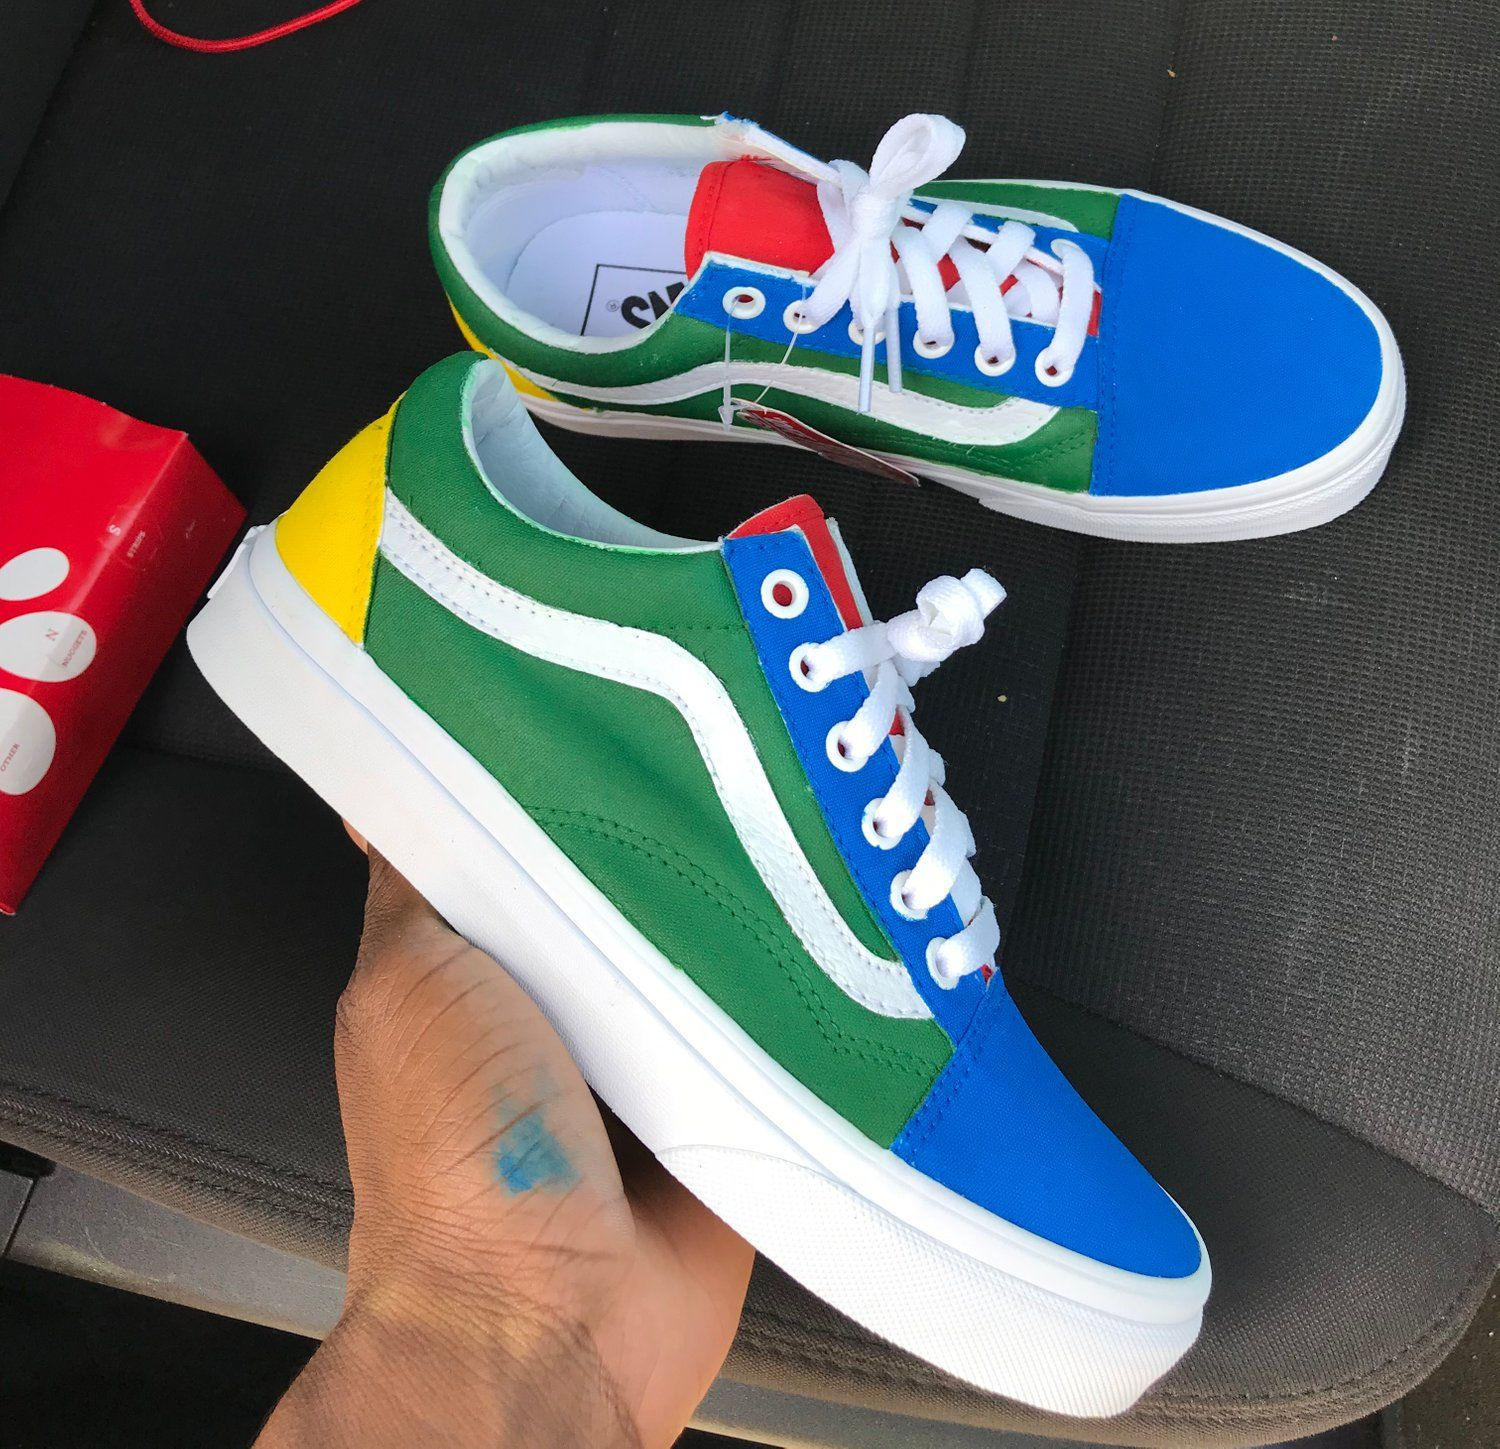 3fa7a03782 Image of Yacht club custom vans